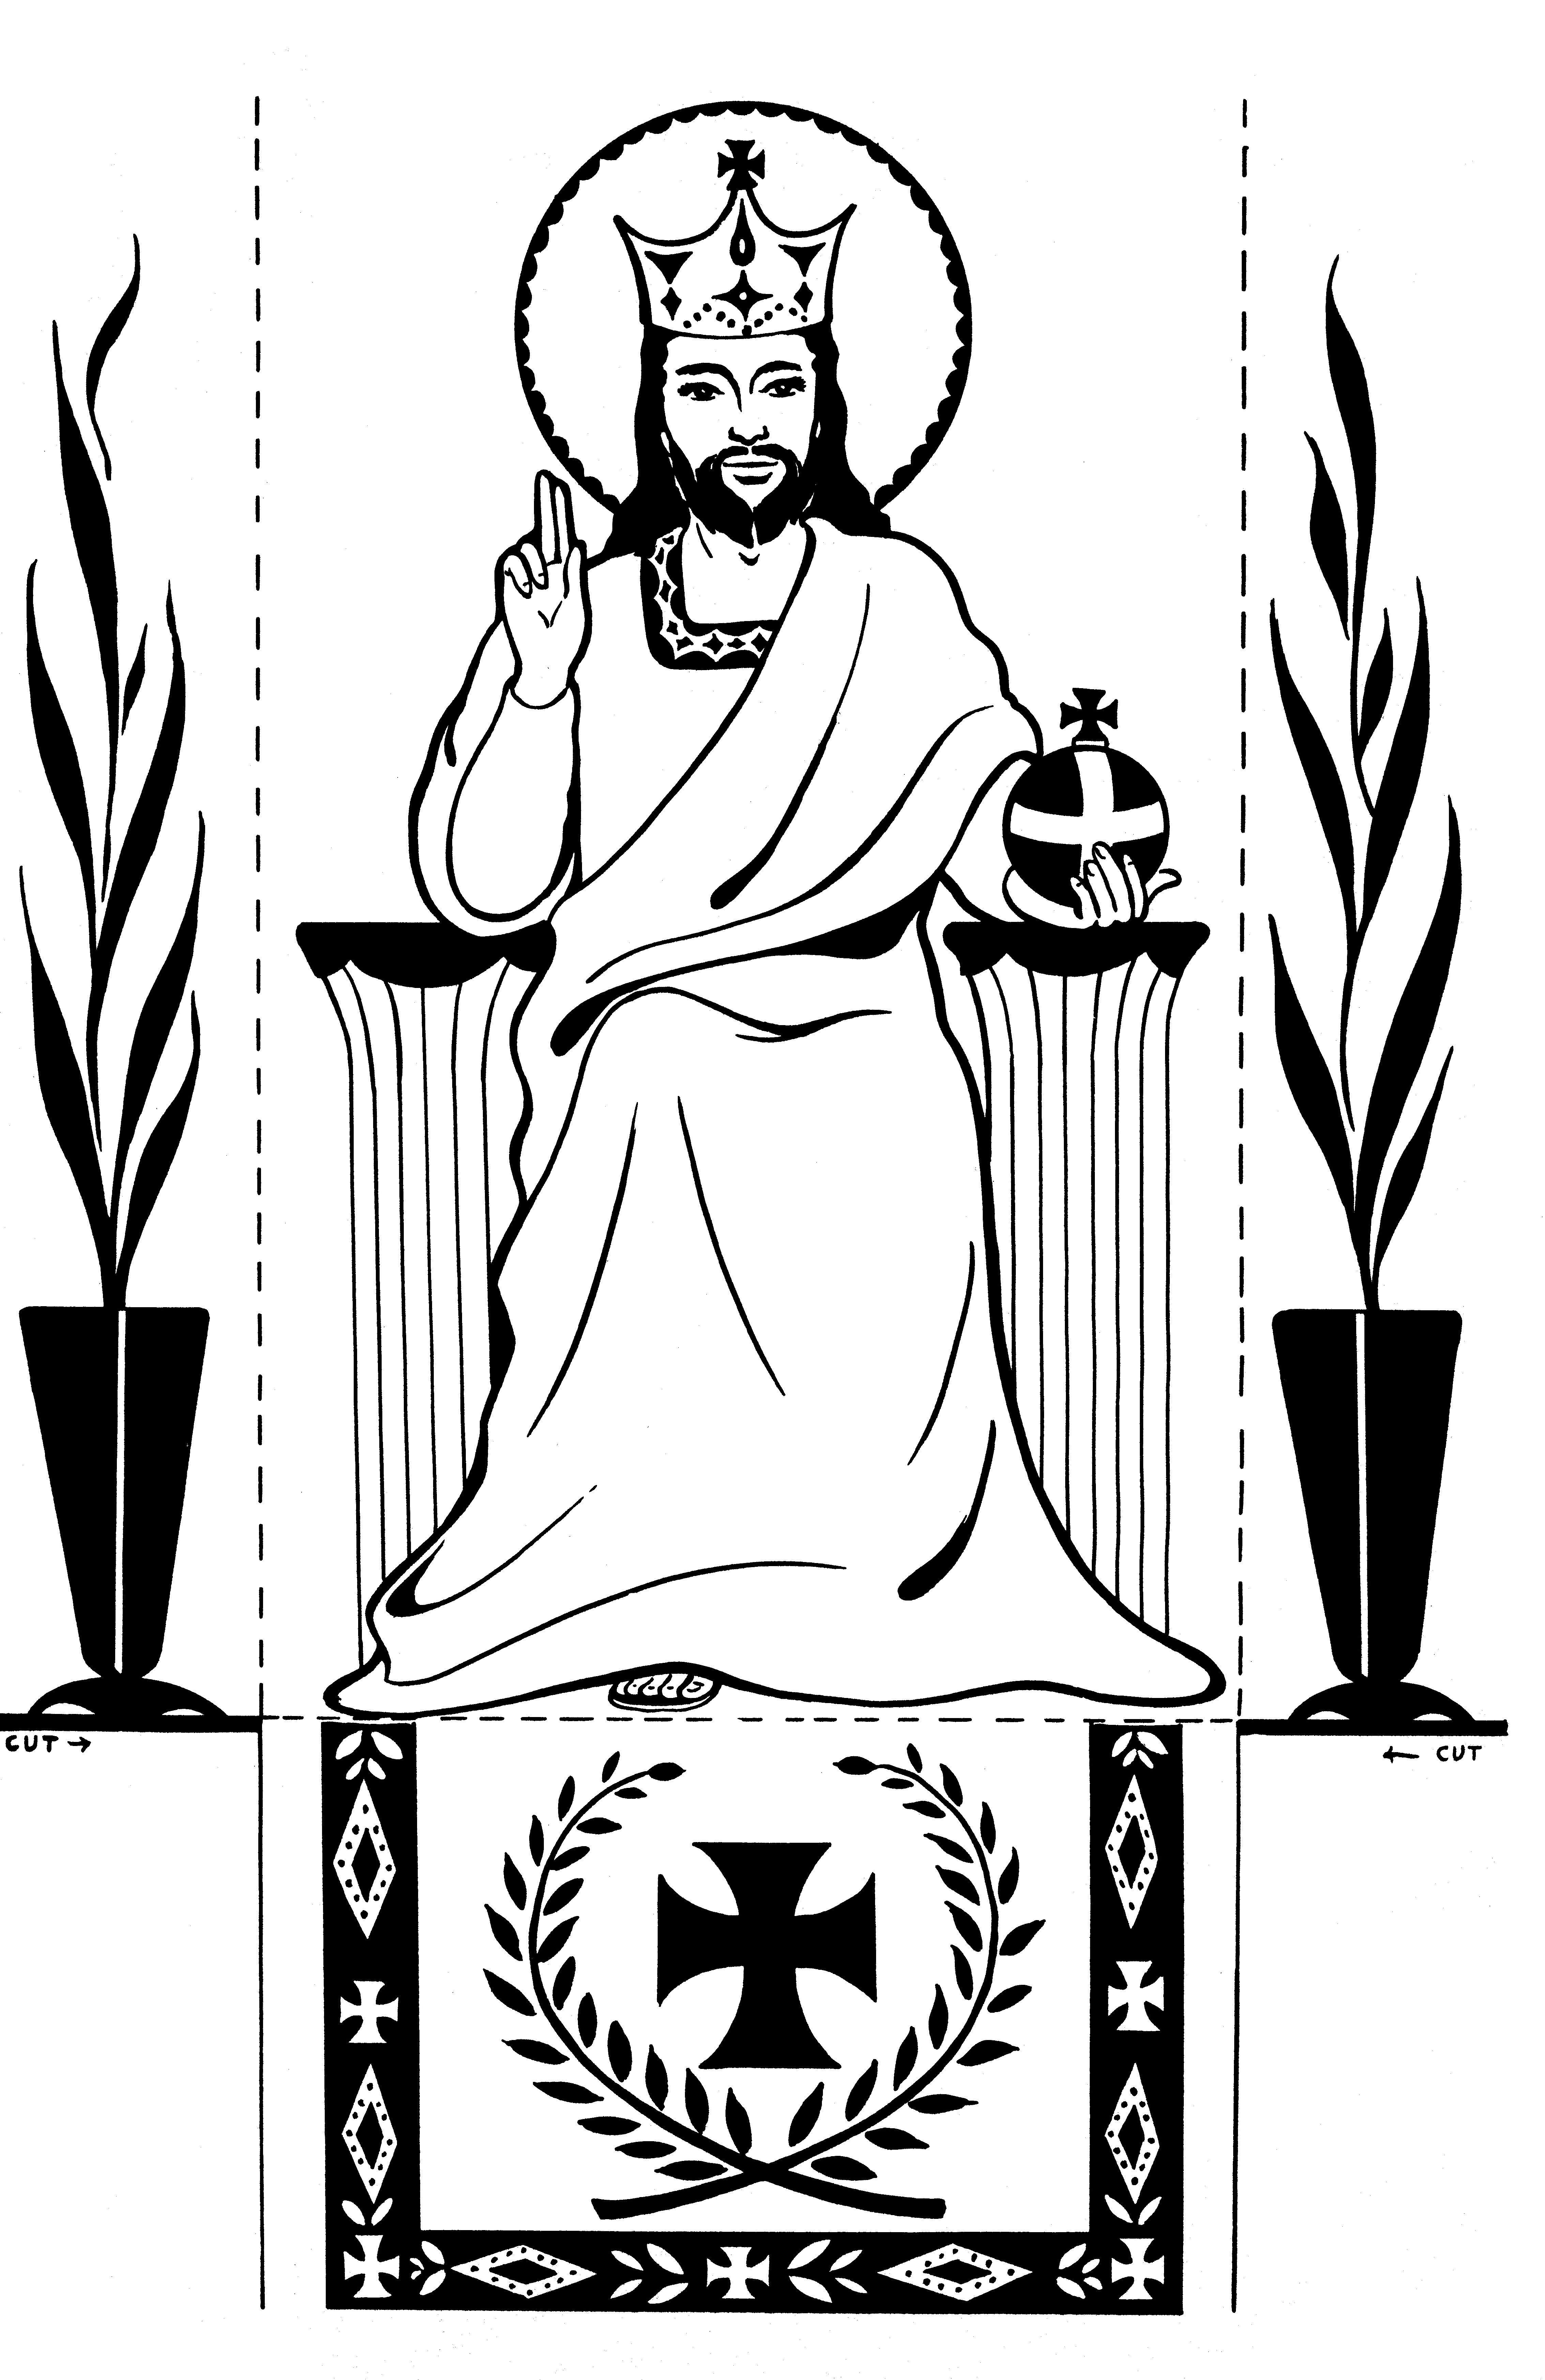 Fold On The Dotted Lines To Stand Up Picture Christ King Catholic Coloring Page